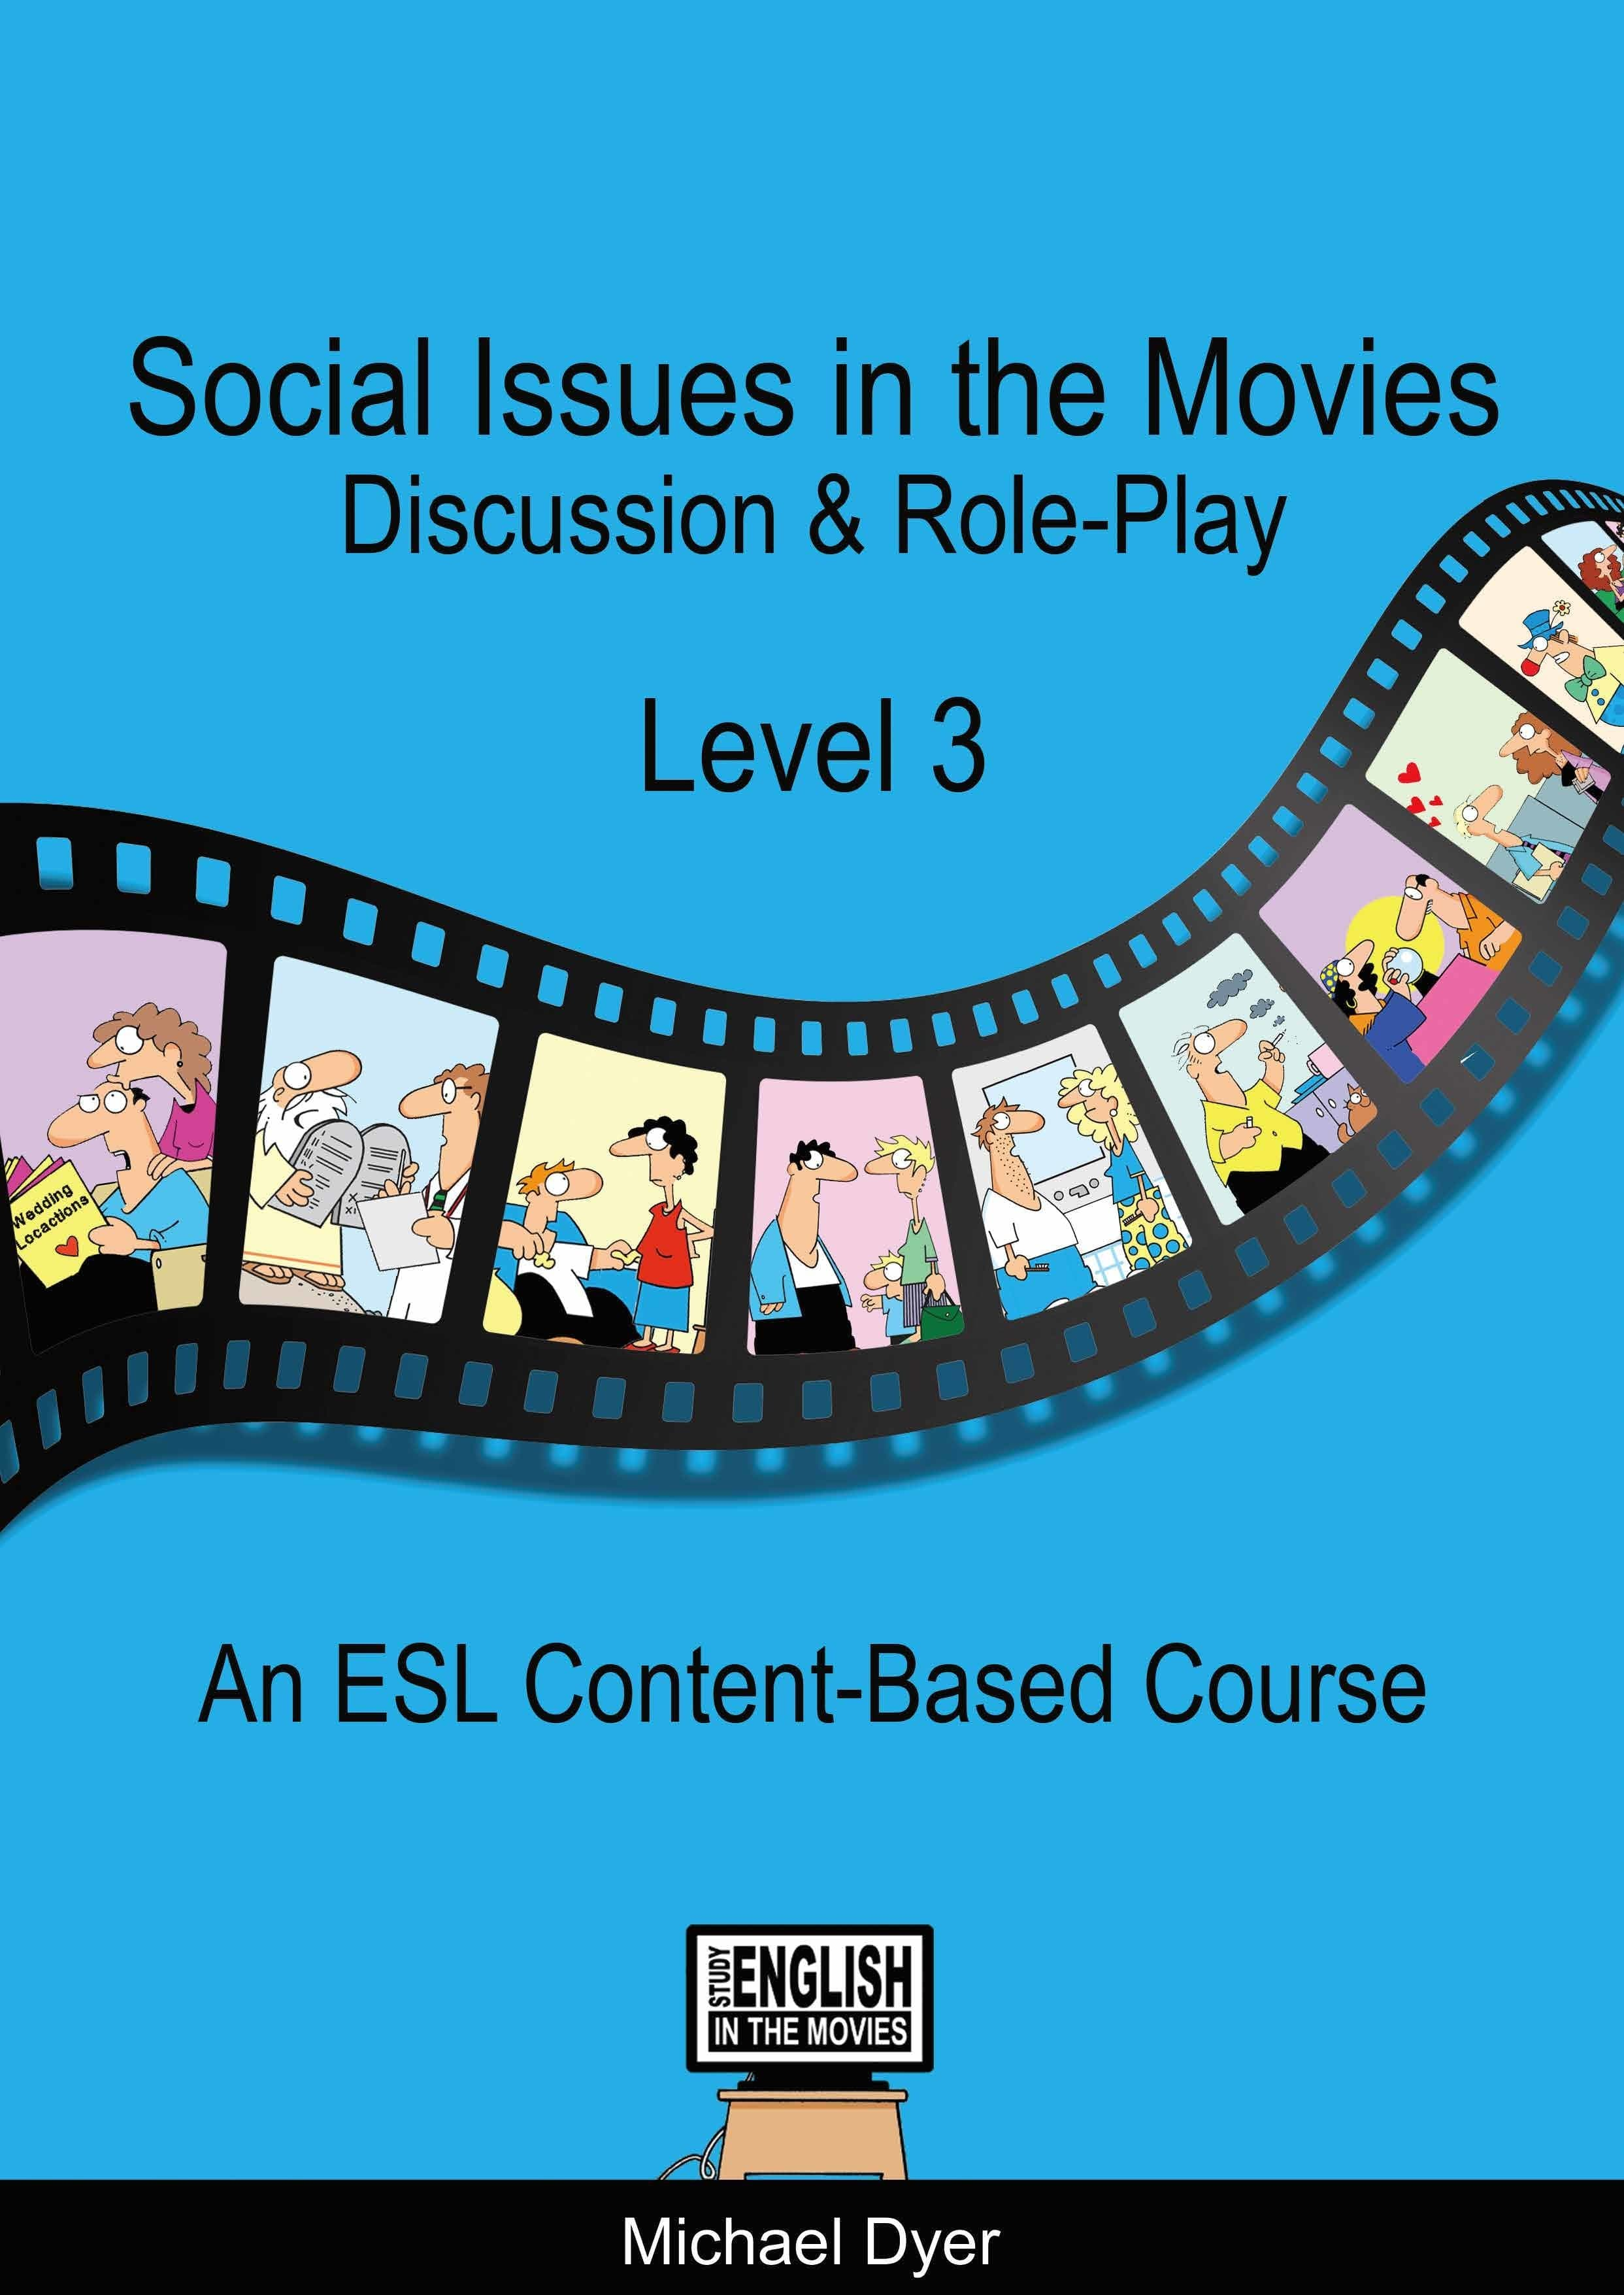 『Social Issues in the Movies Level3』Michael Dyer 著